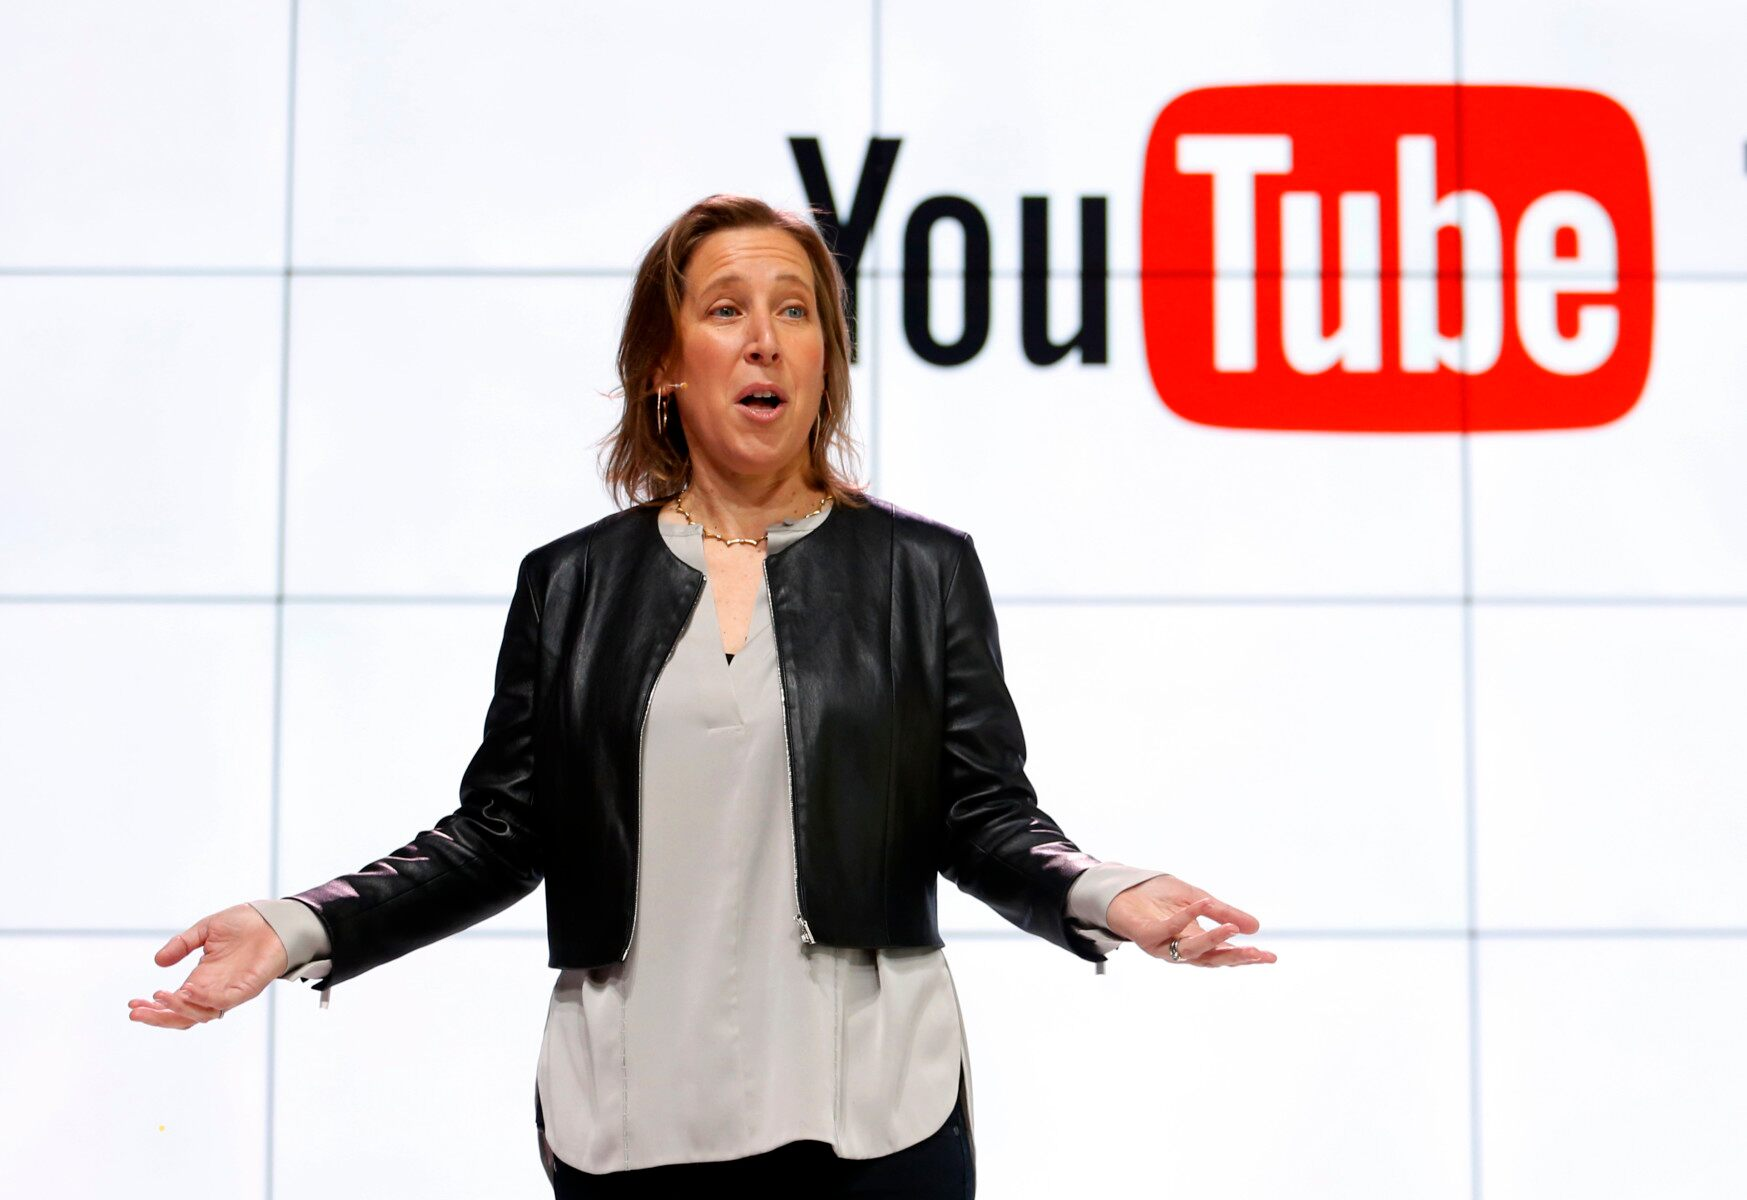 Google to hire thousands of YouTube moderators as criticism over content mounts